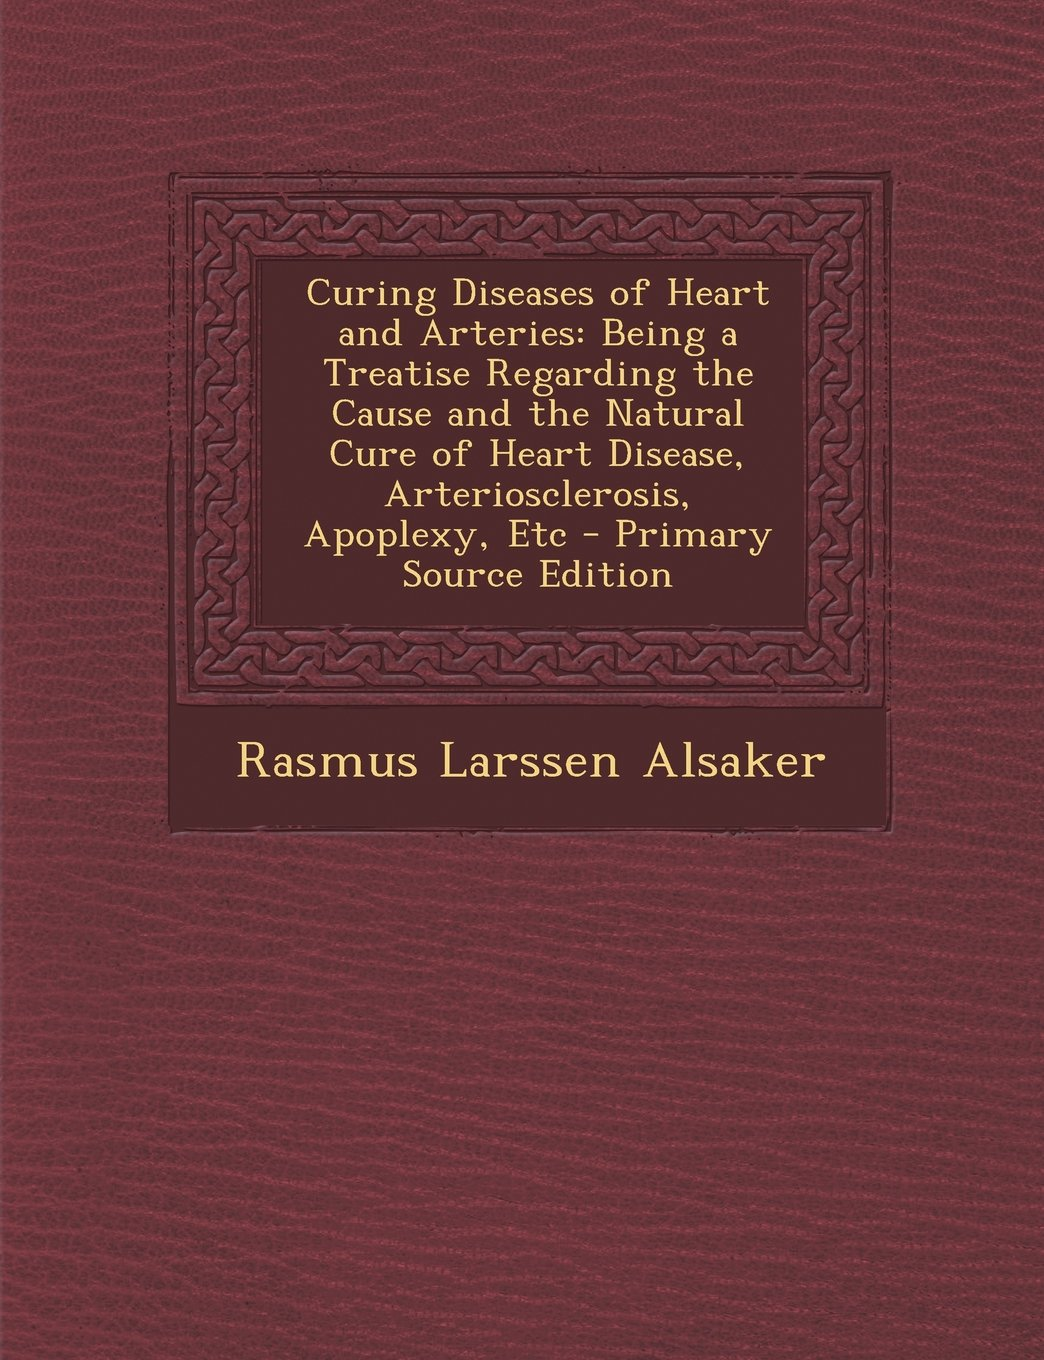 Download Curing Diseases of Heart and Arteries: Being a Treatise Regarding the Cause and the Natural Cure of Heart Disease, Arteriosclerosis, Apoplexy, Etc pdf